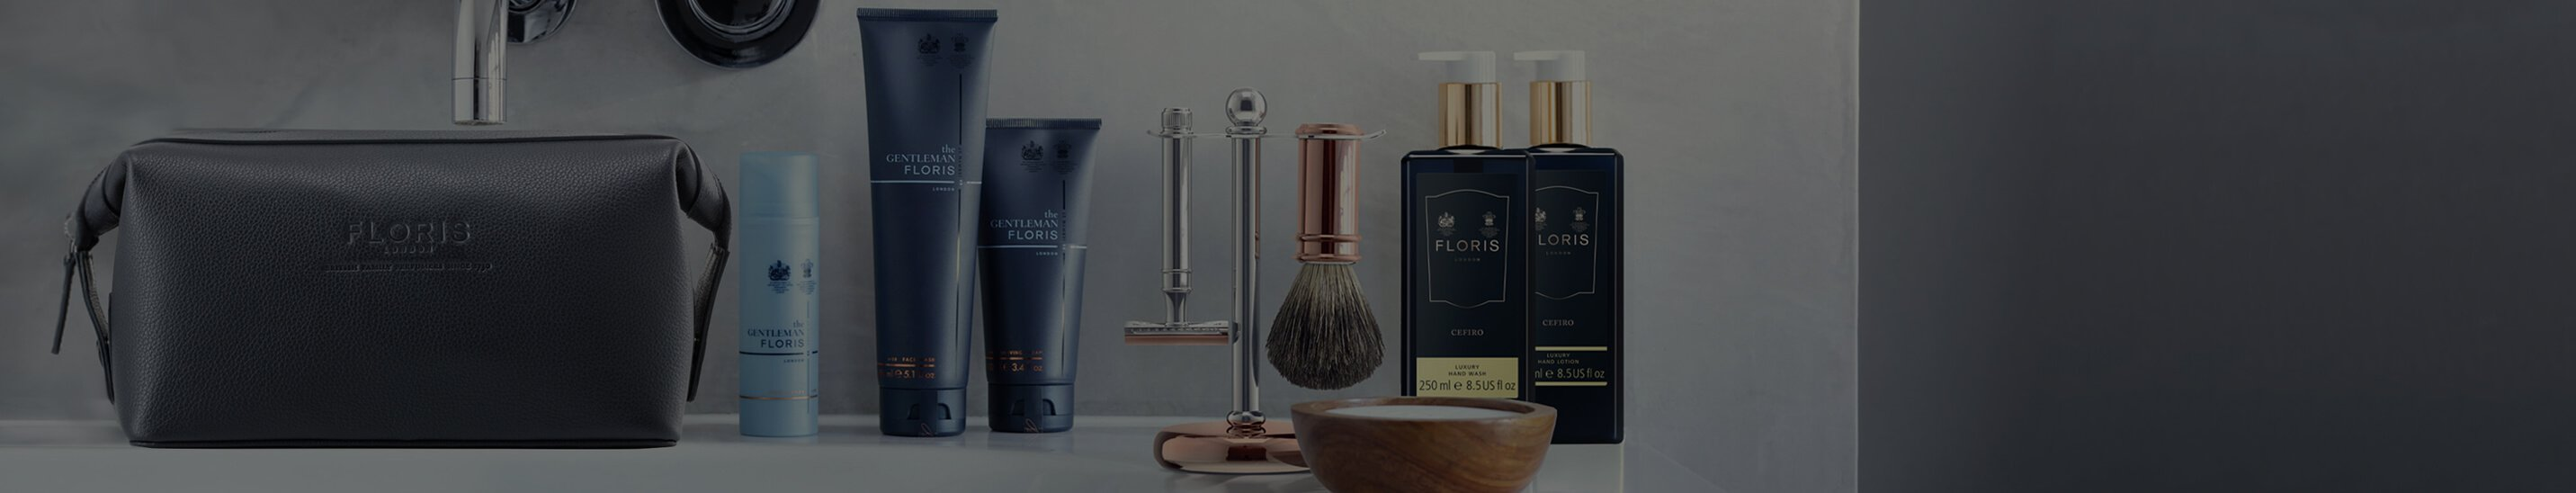 Floris-London-Grooming-Collection-Mobile.jpg